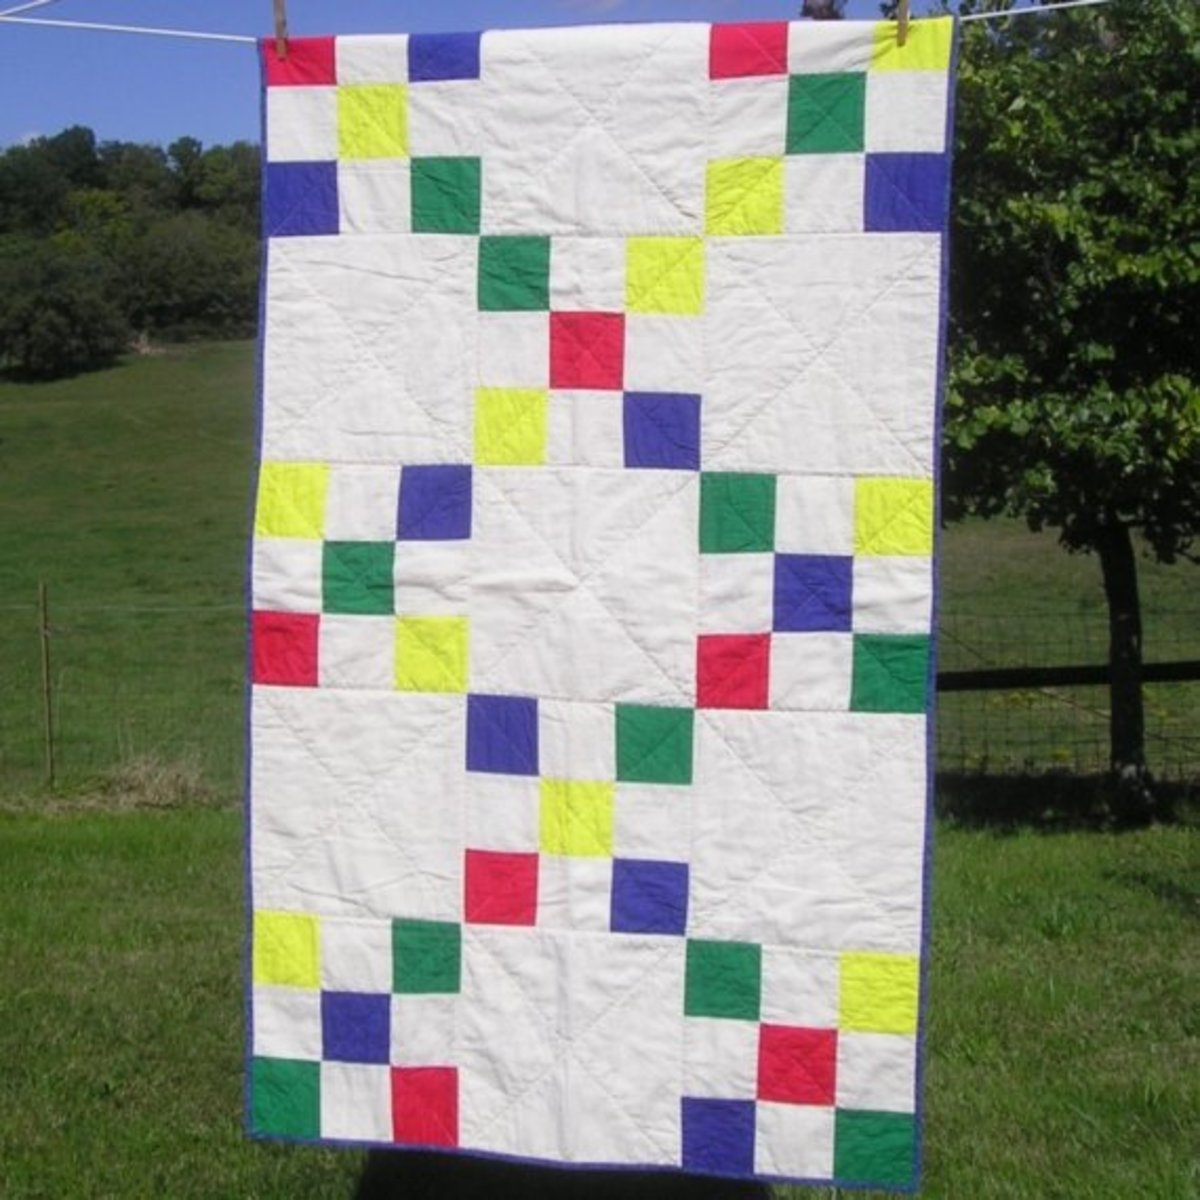 Turn your nine-patch blocks into a simplified Irish chain quilt. Just alternate nine-patch blocks with solid setting blocks cut to the same size.